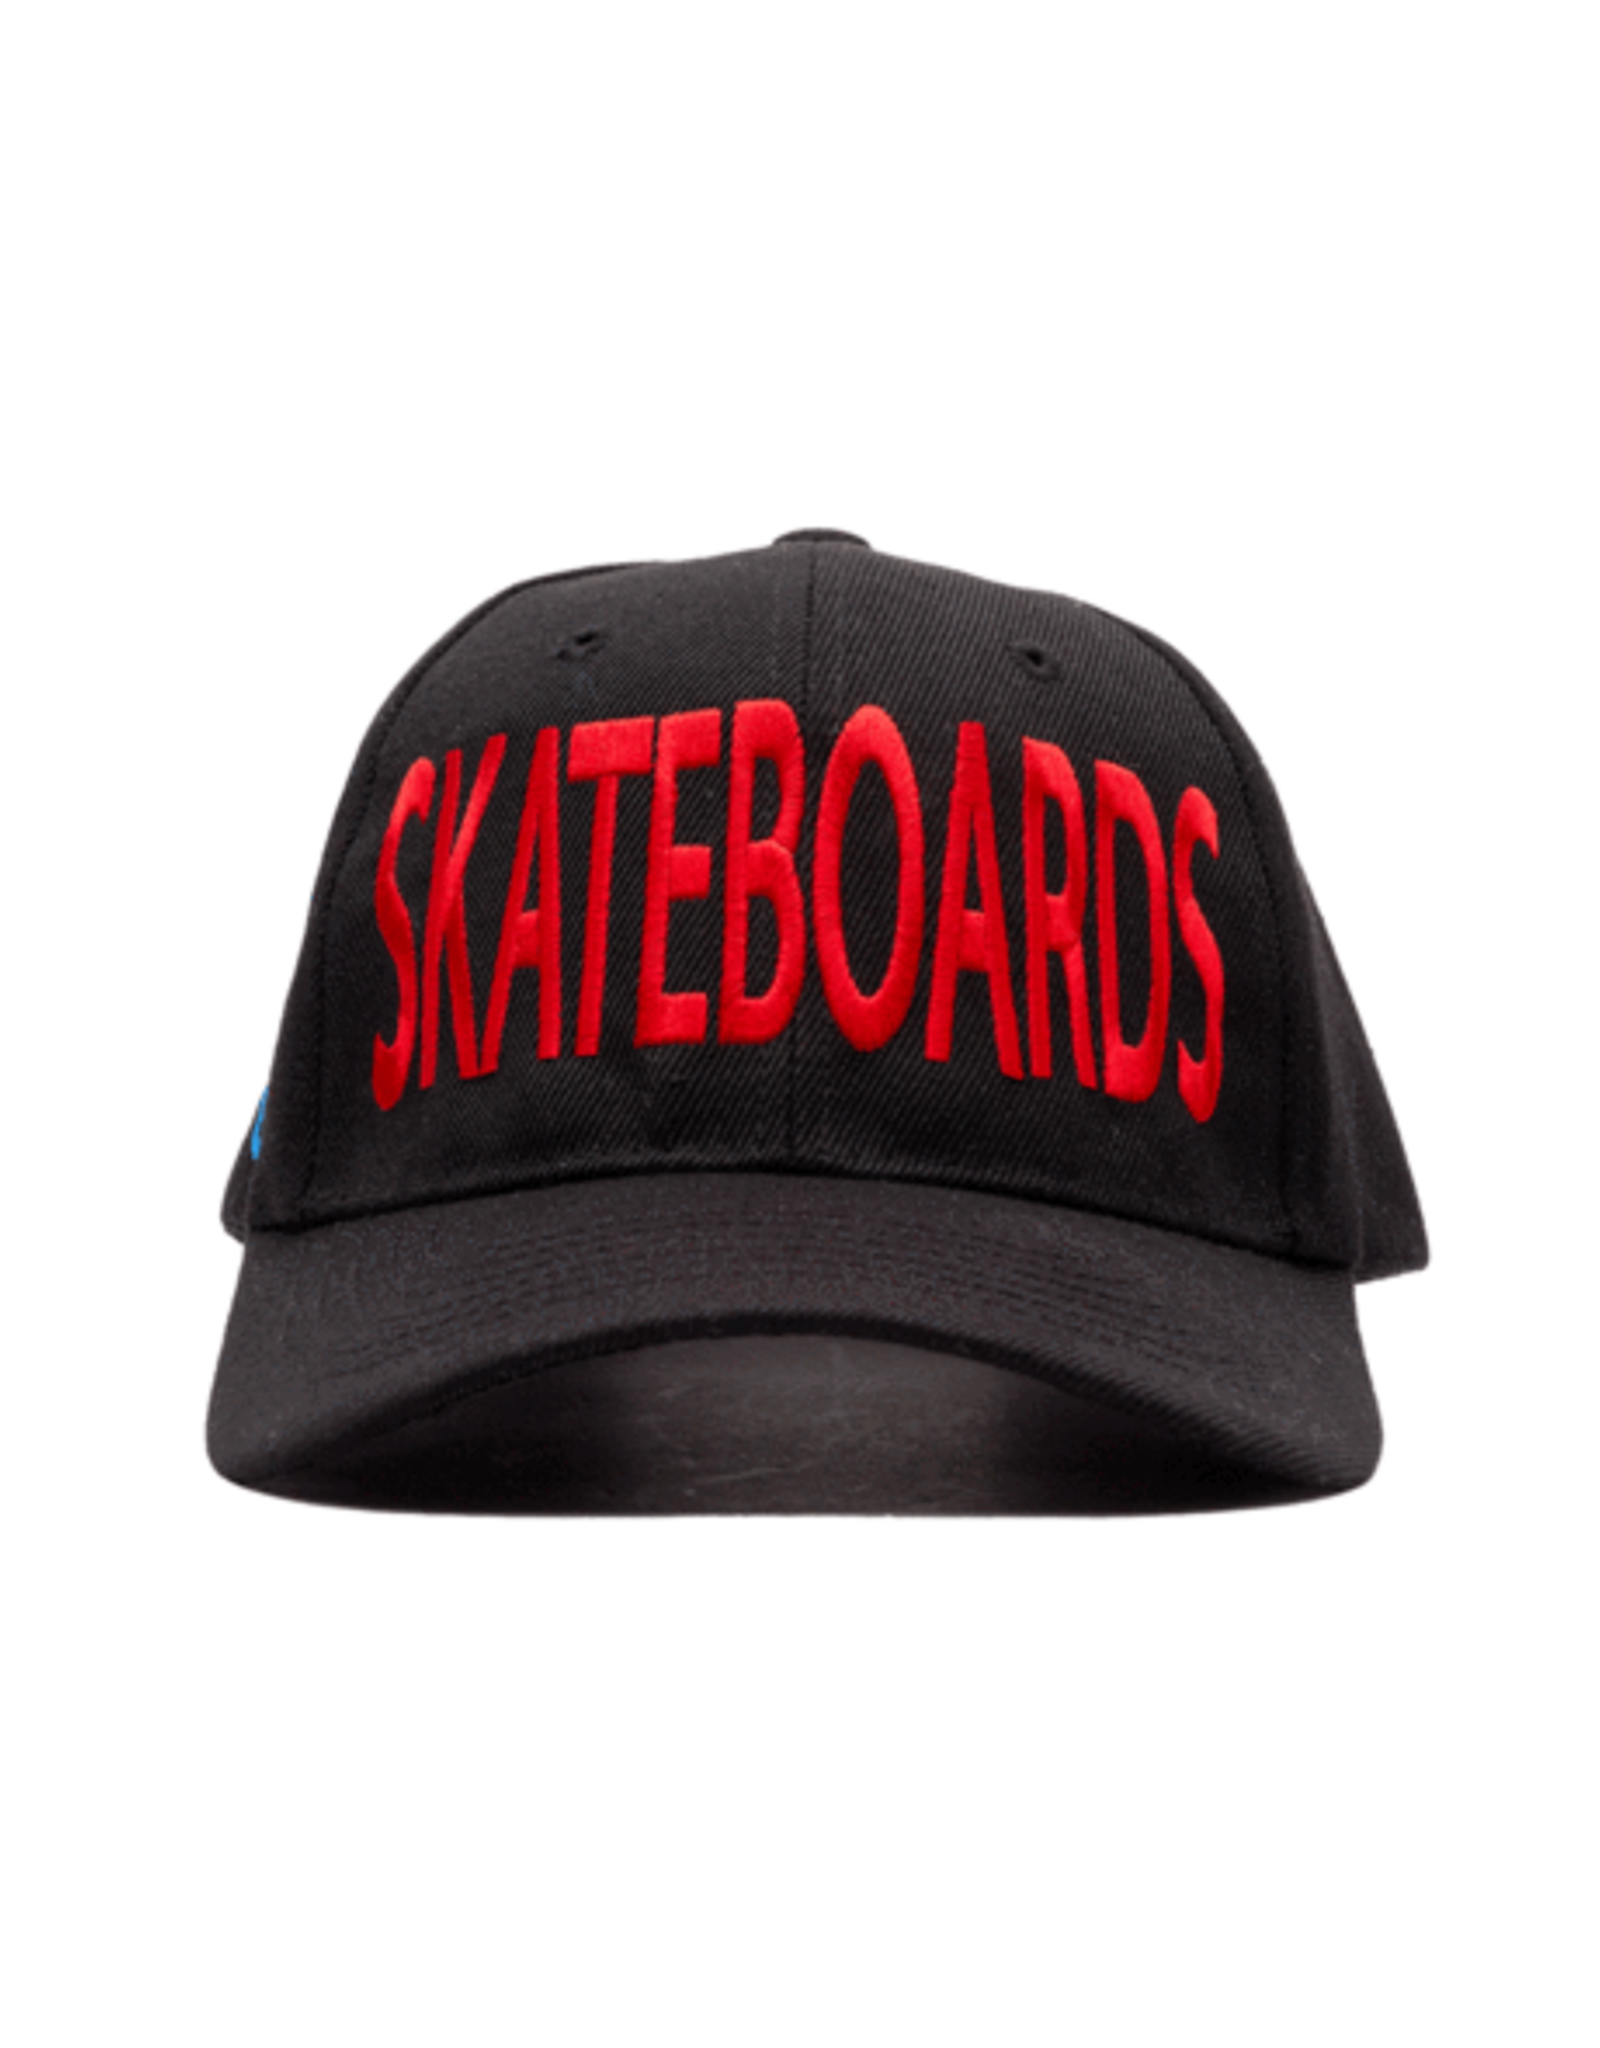 CORPORATE SKATEBOARDS CORPORATE LOOK AT ME BITCH HAT - BLACK